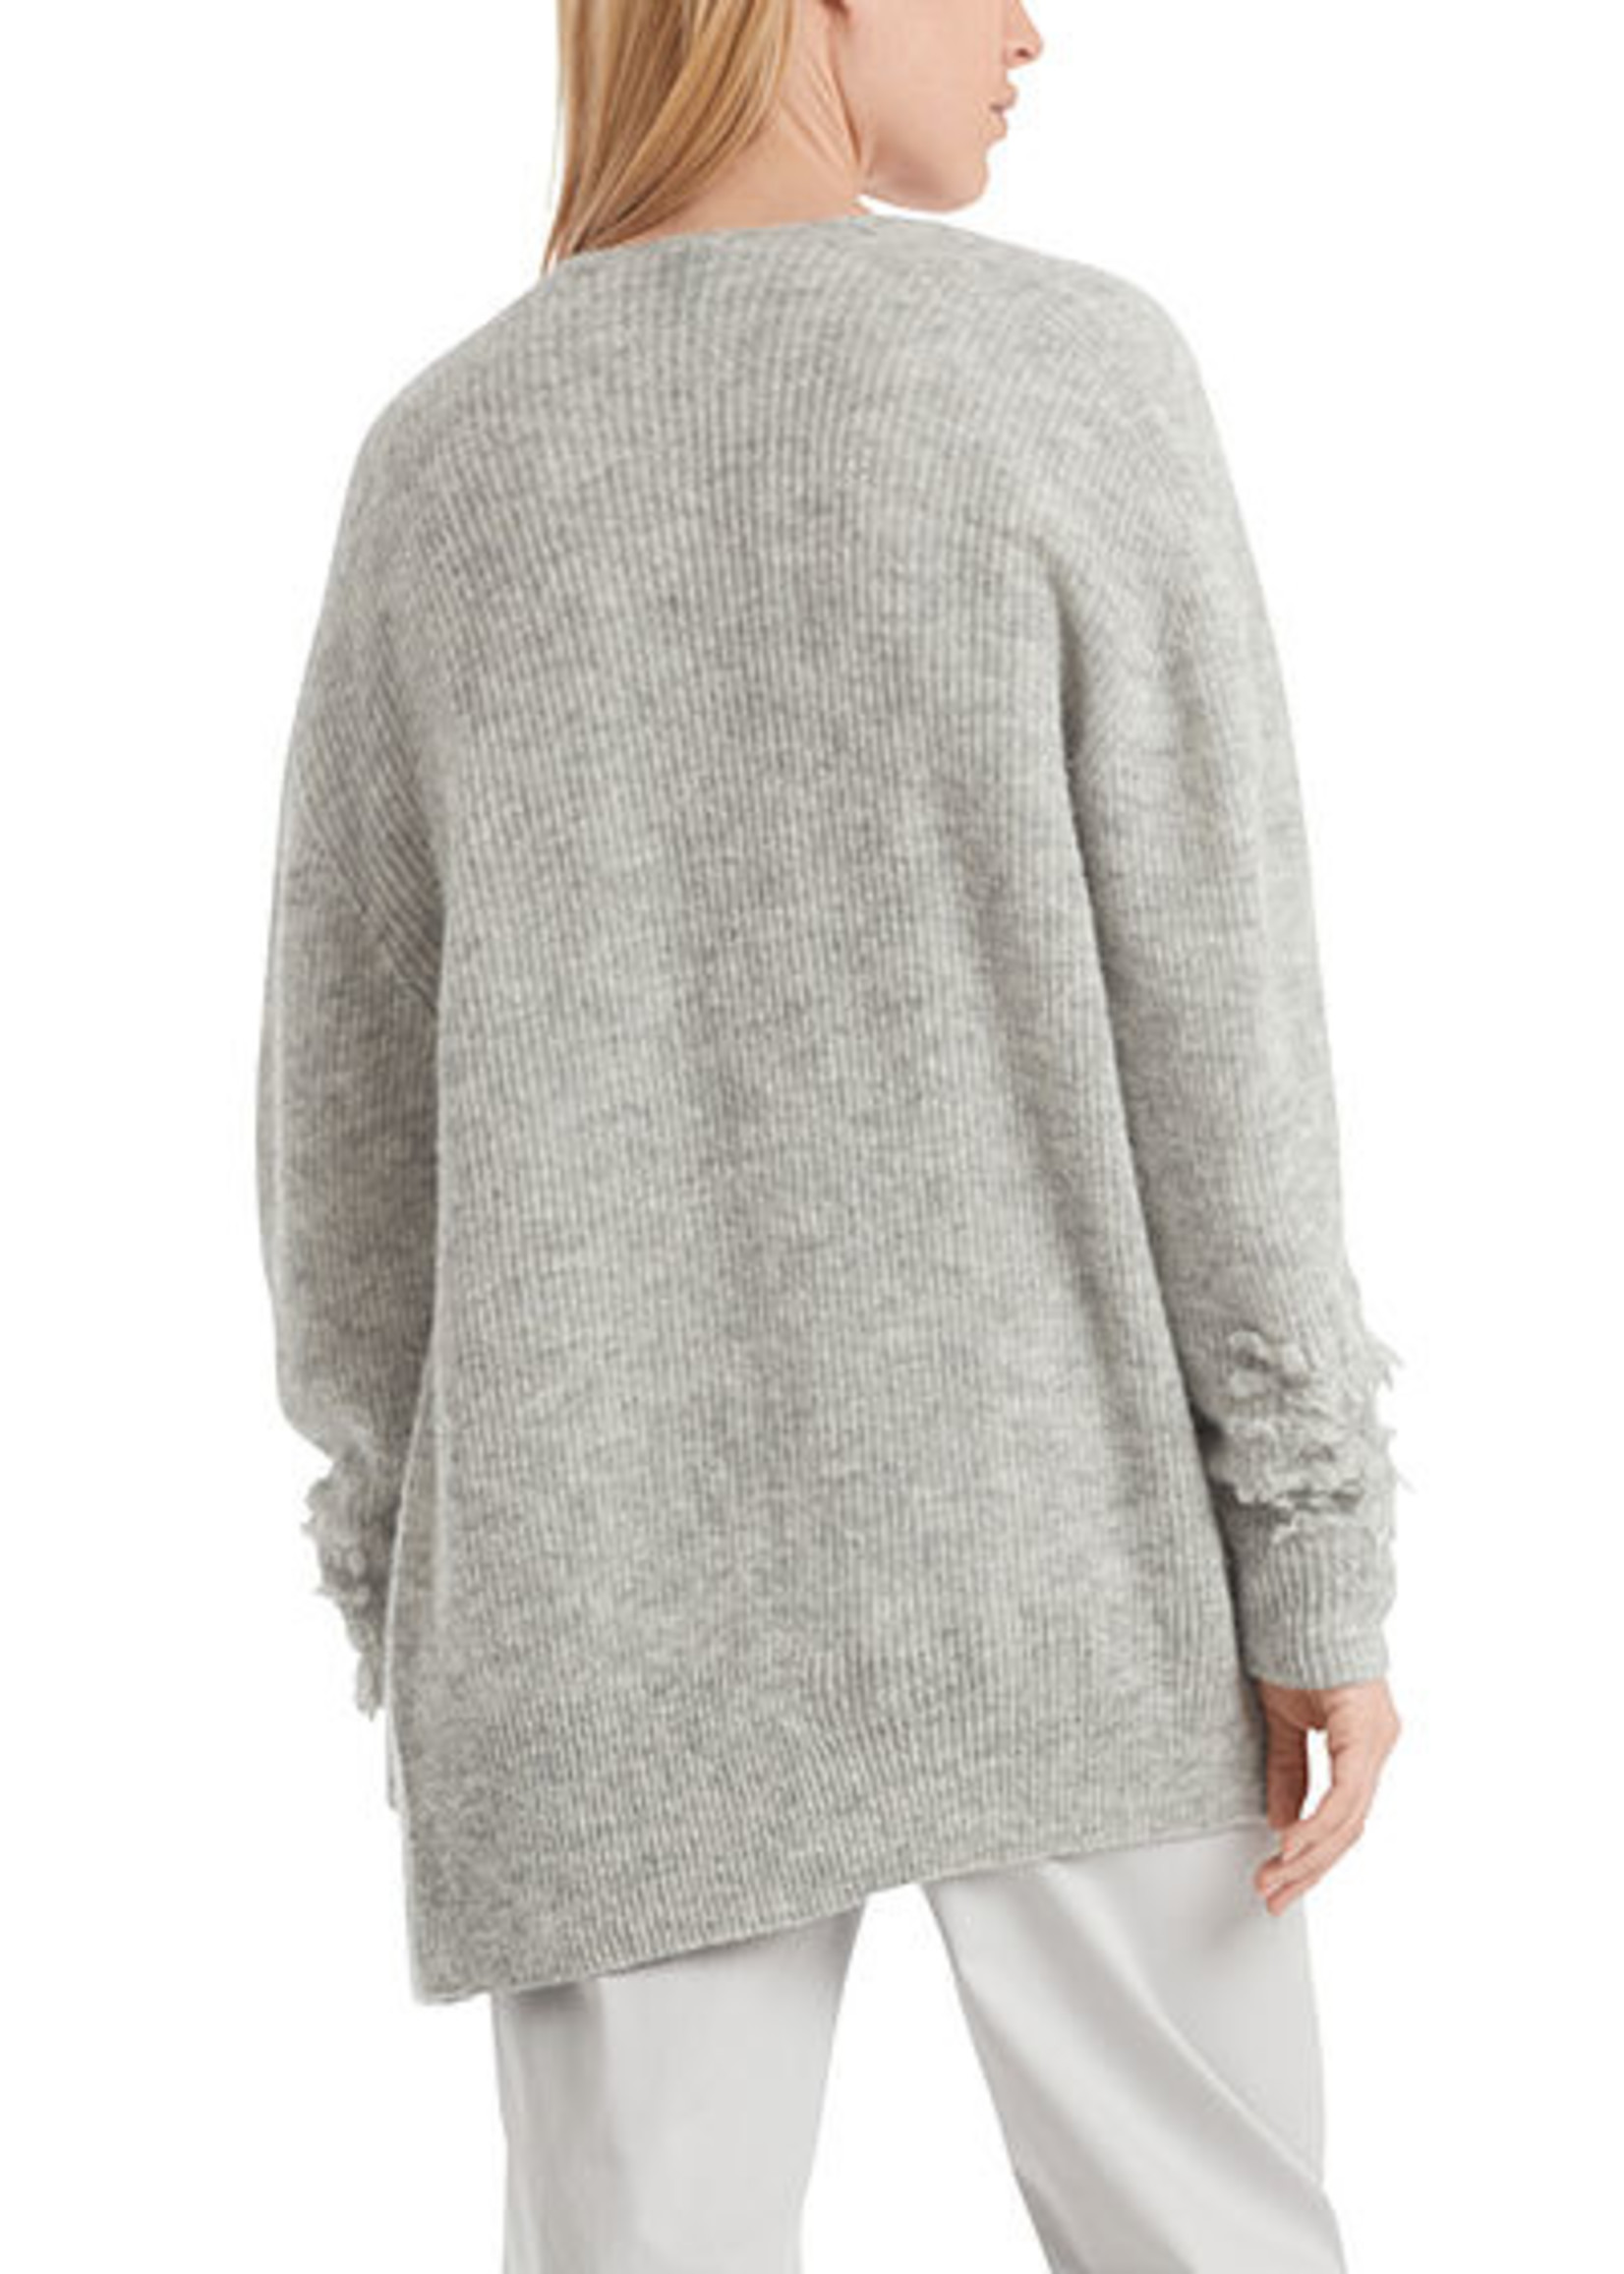 Marccain Sports Jack RS 31.27 M04 silver grey